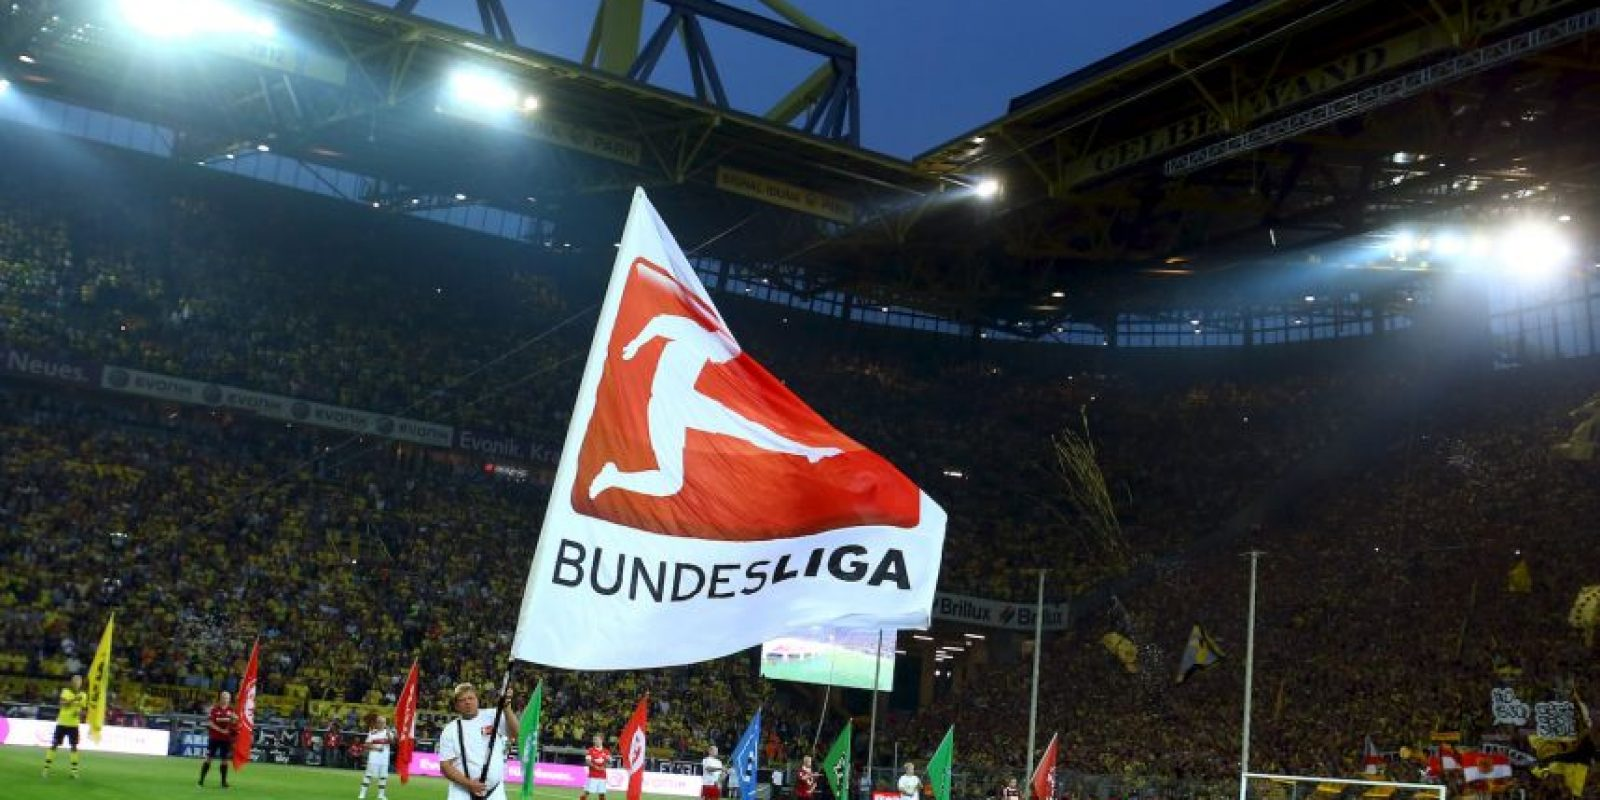 6. BUNDESLIGA (Alemania): 24.8 años. Foto: Getty Images